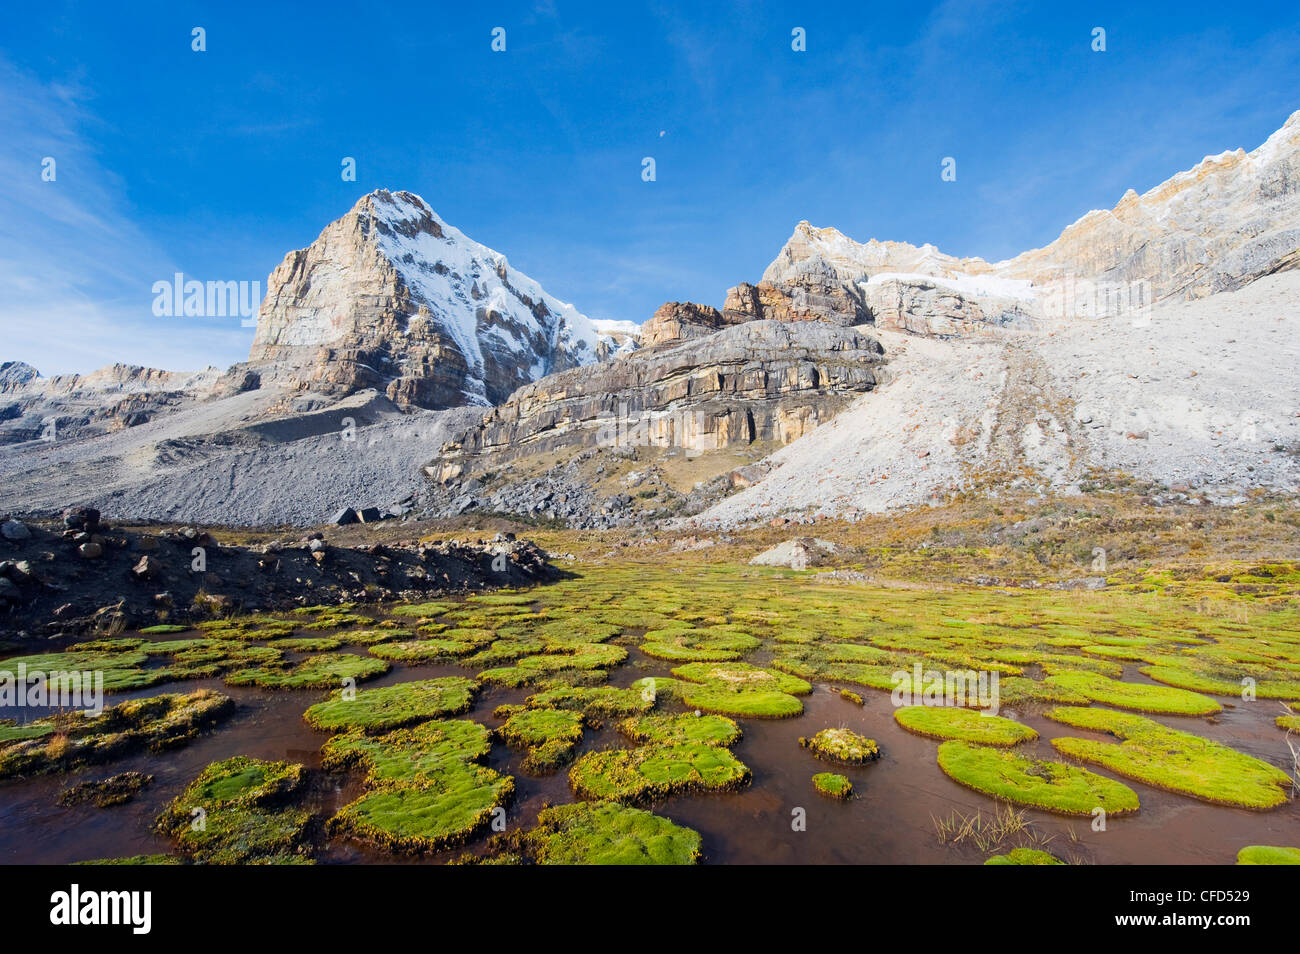 Cojines plants below cerro de Ritacuba, 5230m, El Cocuy National Park, Colombia, South America - Stock Image